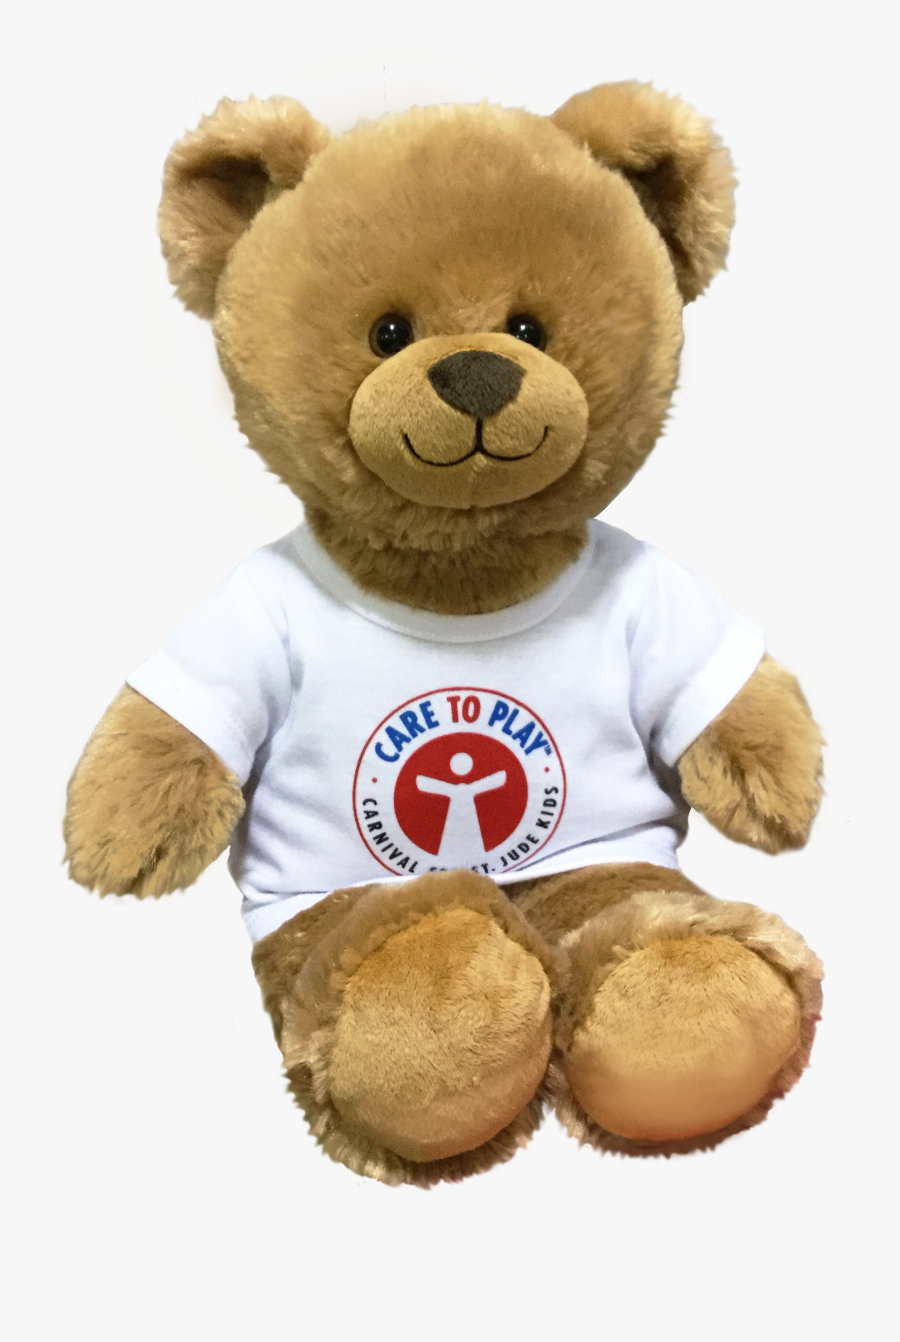 Transparent Build A Bear Png, Transparent Clipart